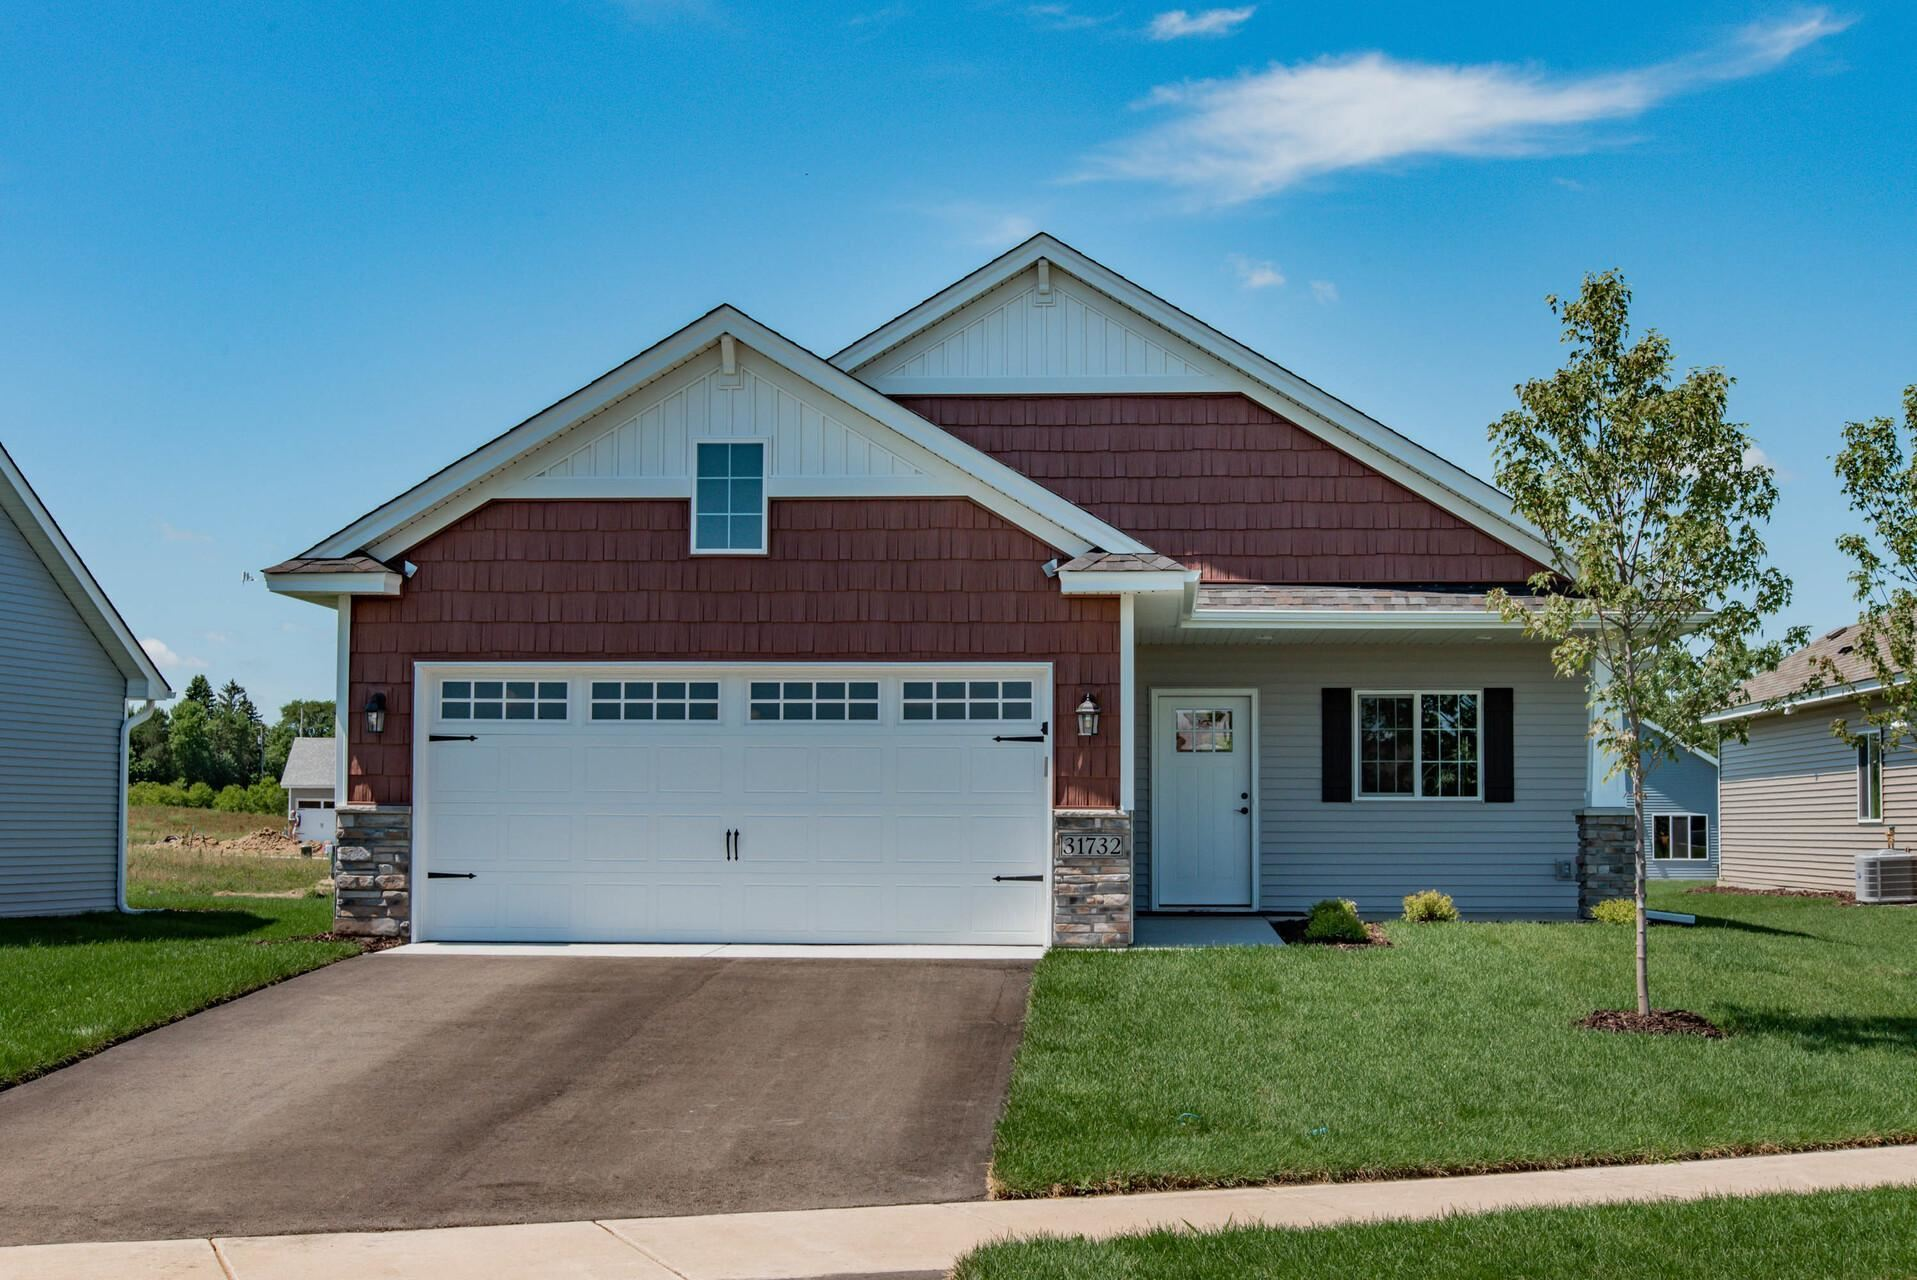 31732 Mcguire Trail, Lindstrom, MN 55045 - #: 5350788